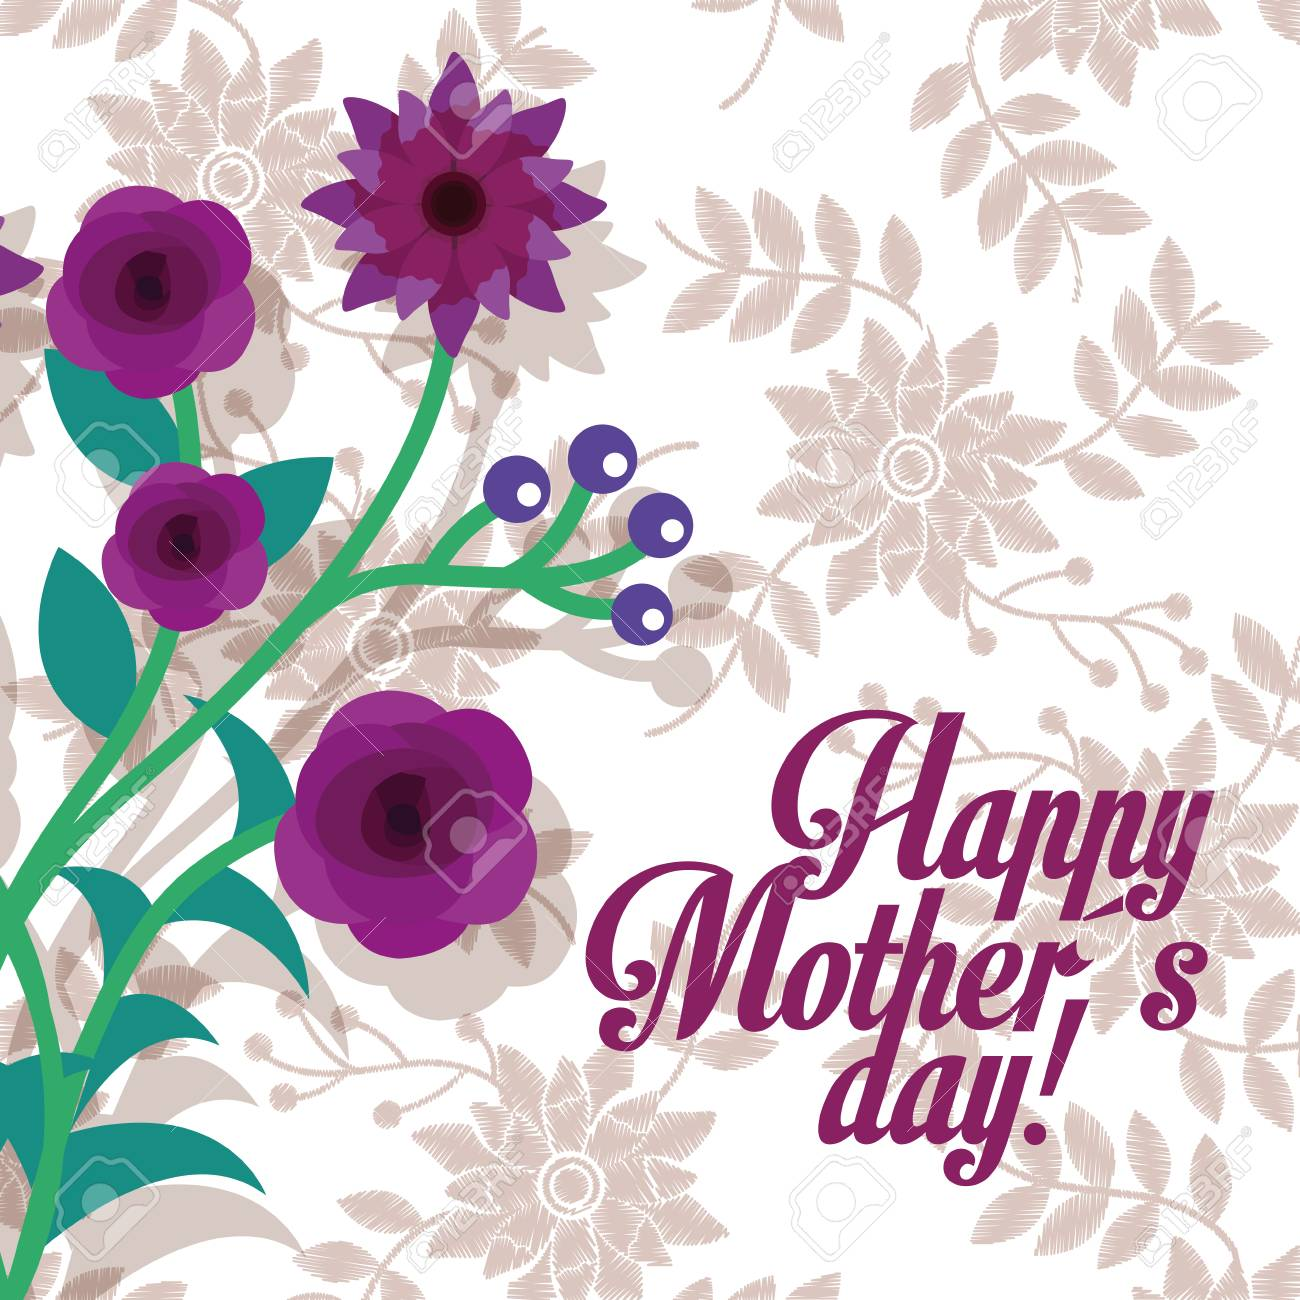 Purple Flowers Leaves Berries Decoration Happy Mothers Day Floral